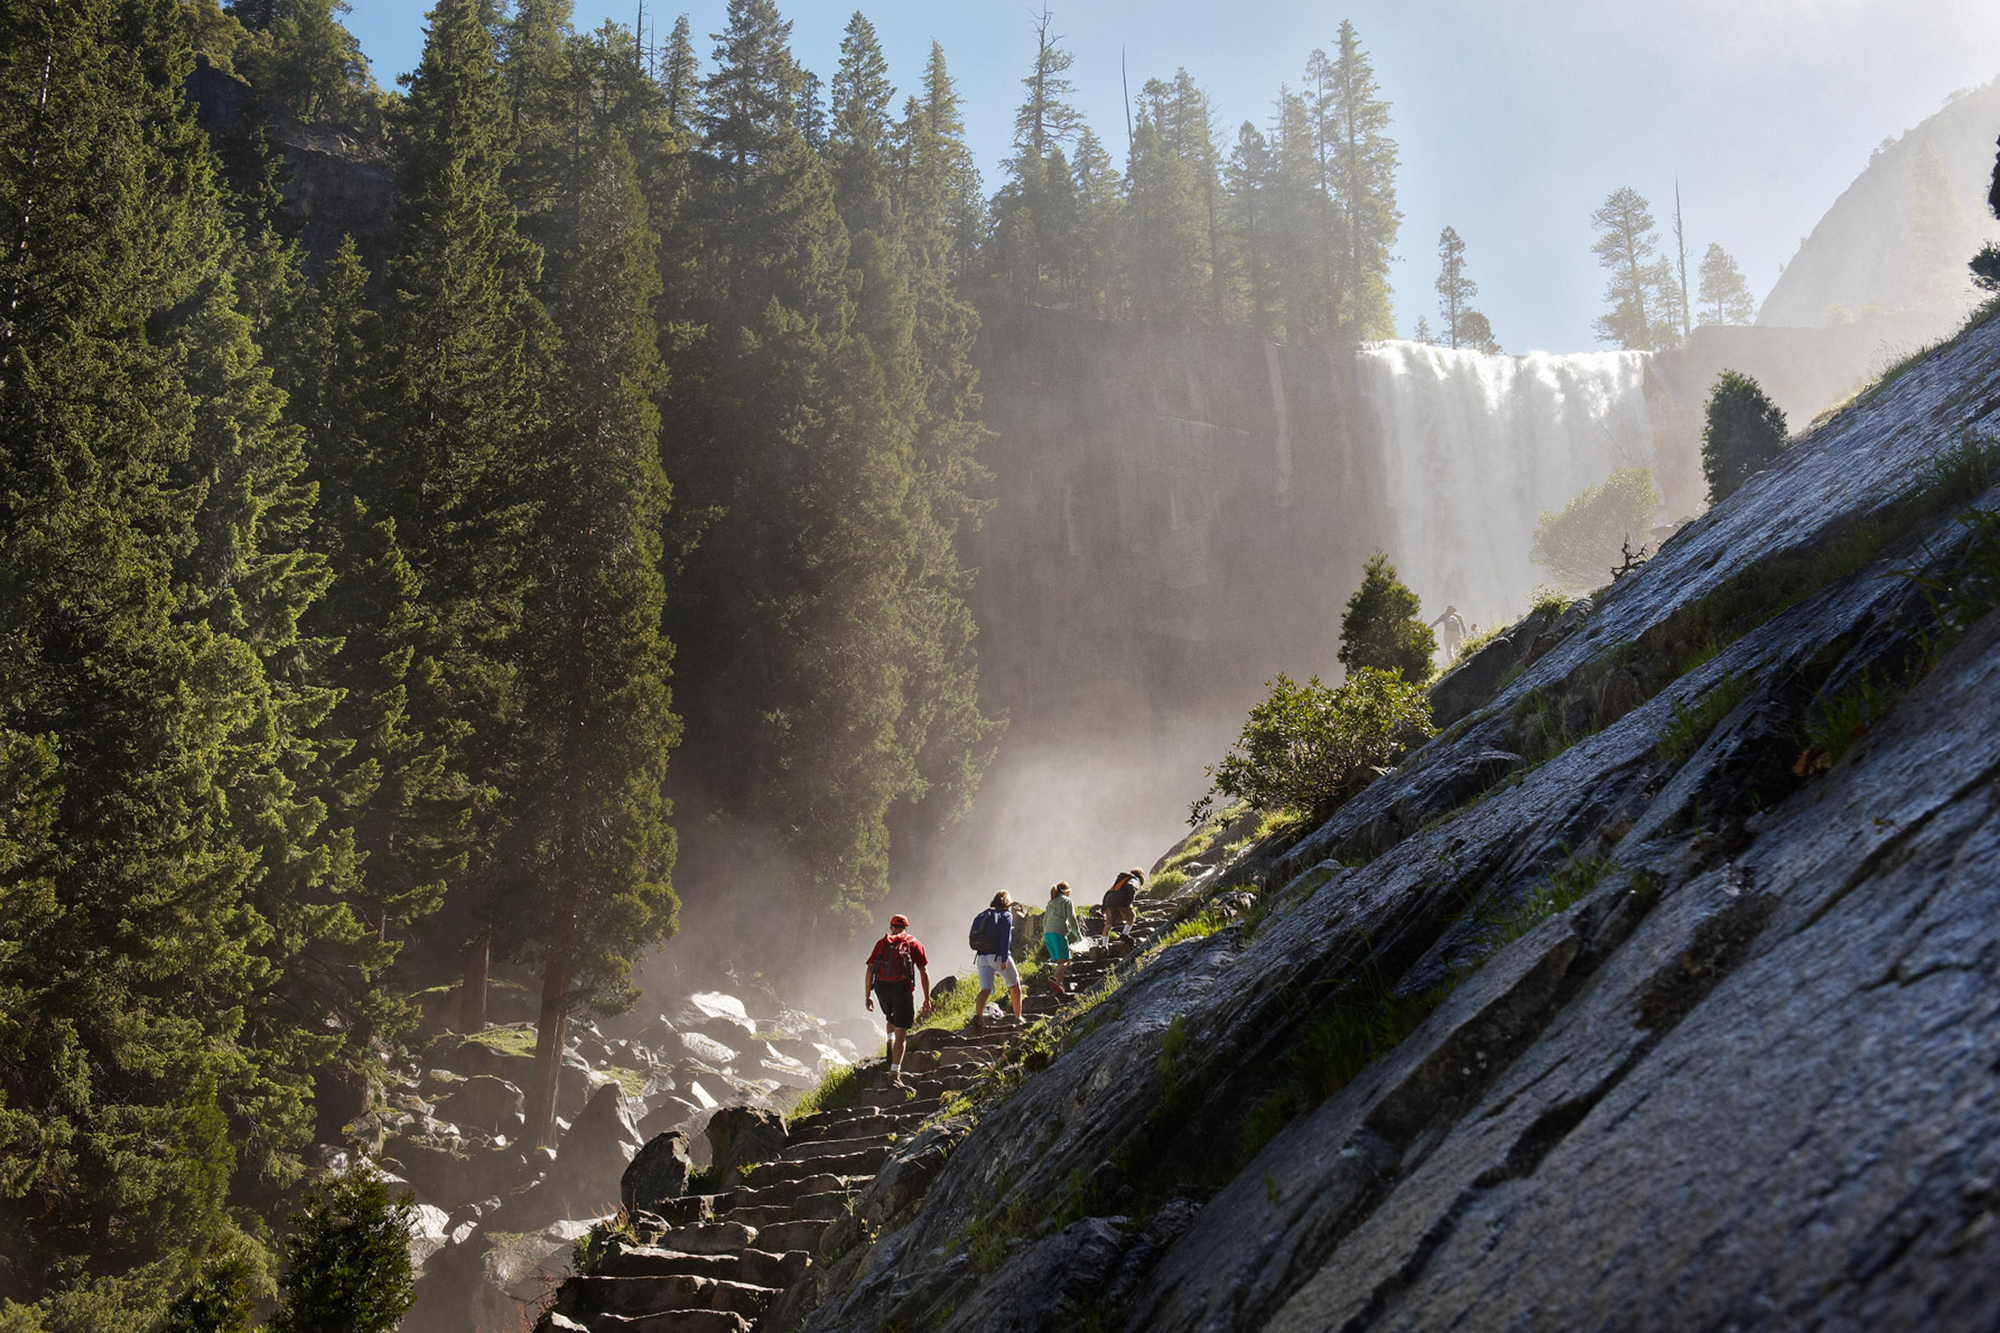 On your free time enjoy Yosemite's amazing outdoor recreation including hiking, biking, rock climbing and winter sports.